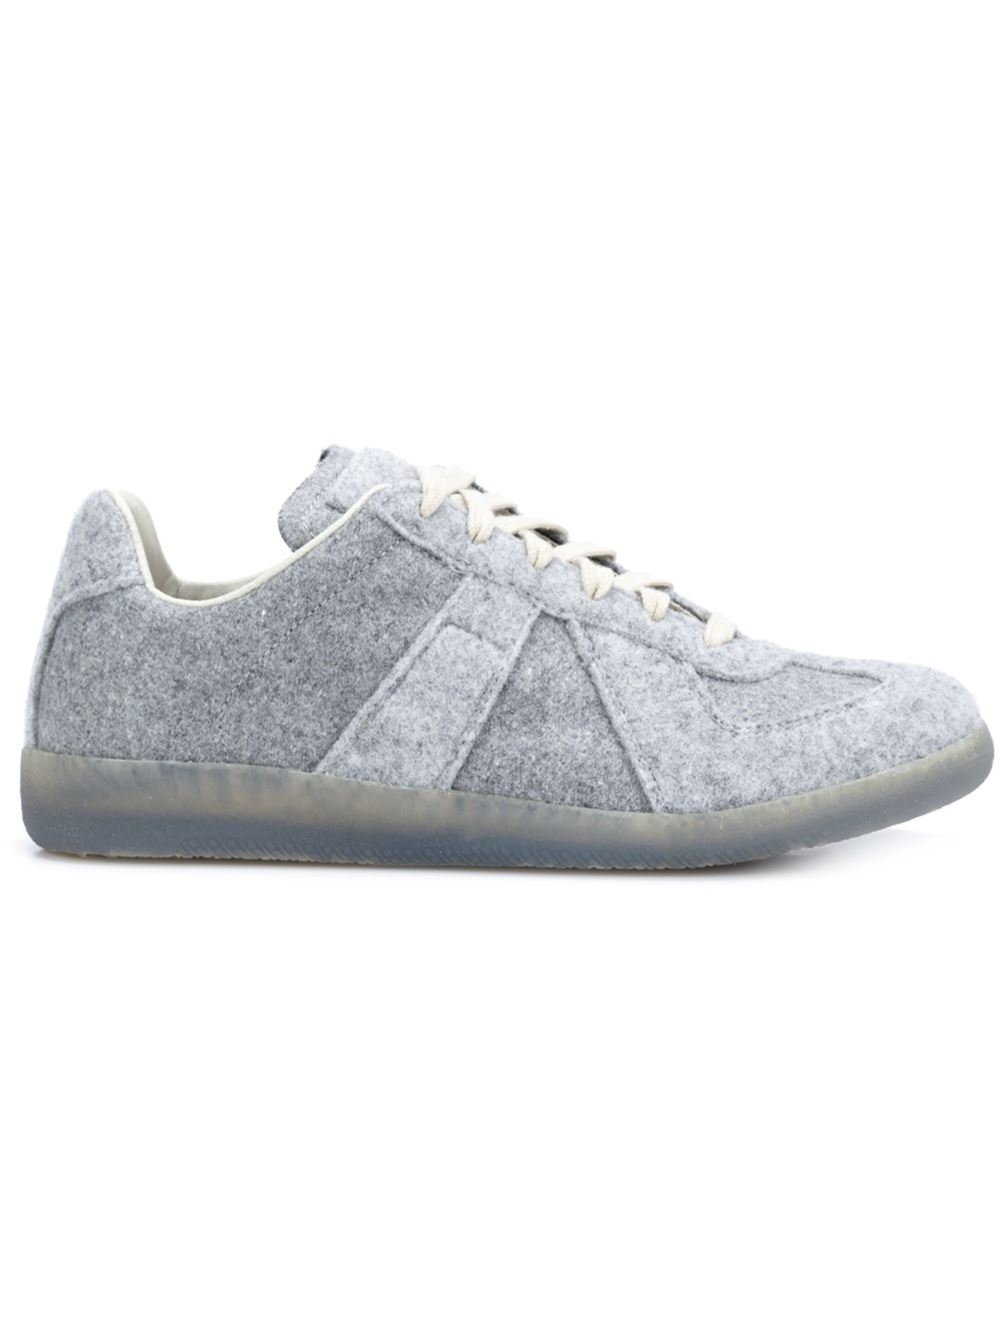 maison margiela 39 replica 39 sneakers in gray grey lyst. Black Bedroom Furniture Sets. Home Design Ideas